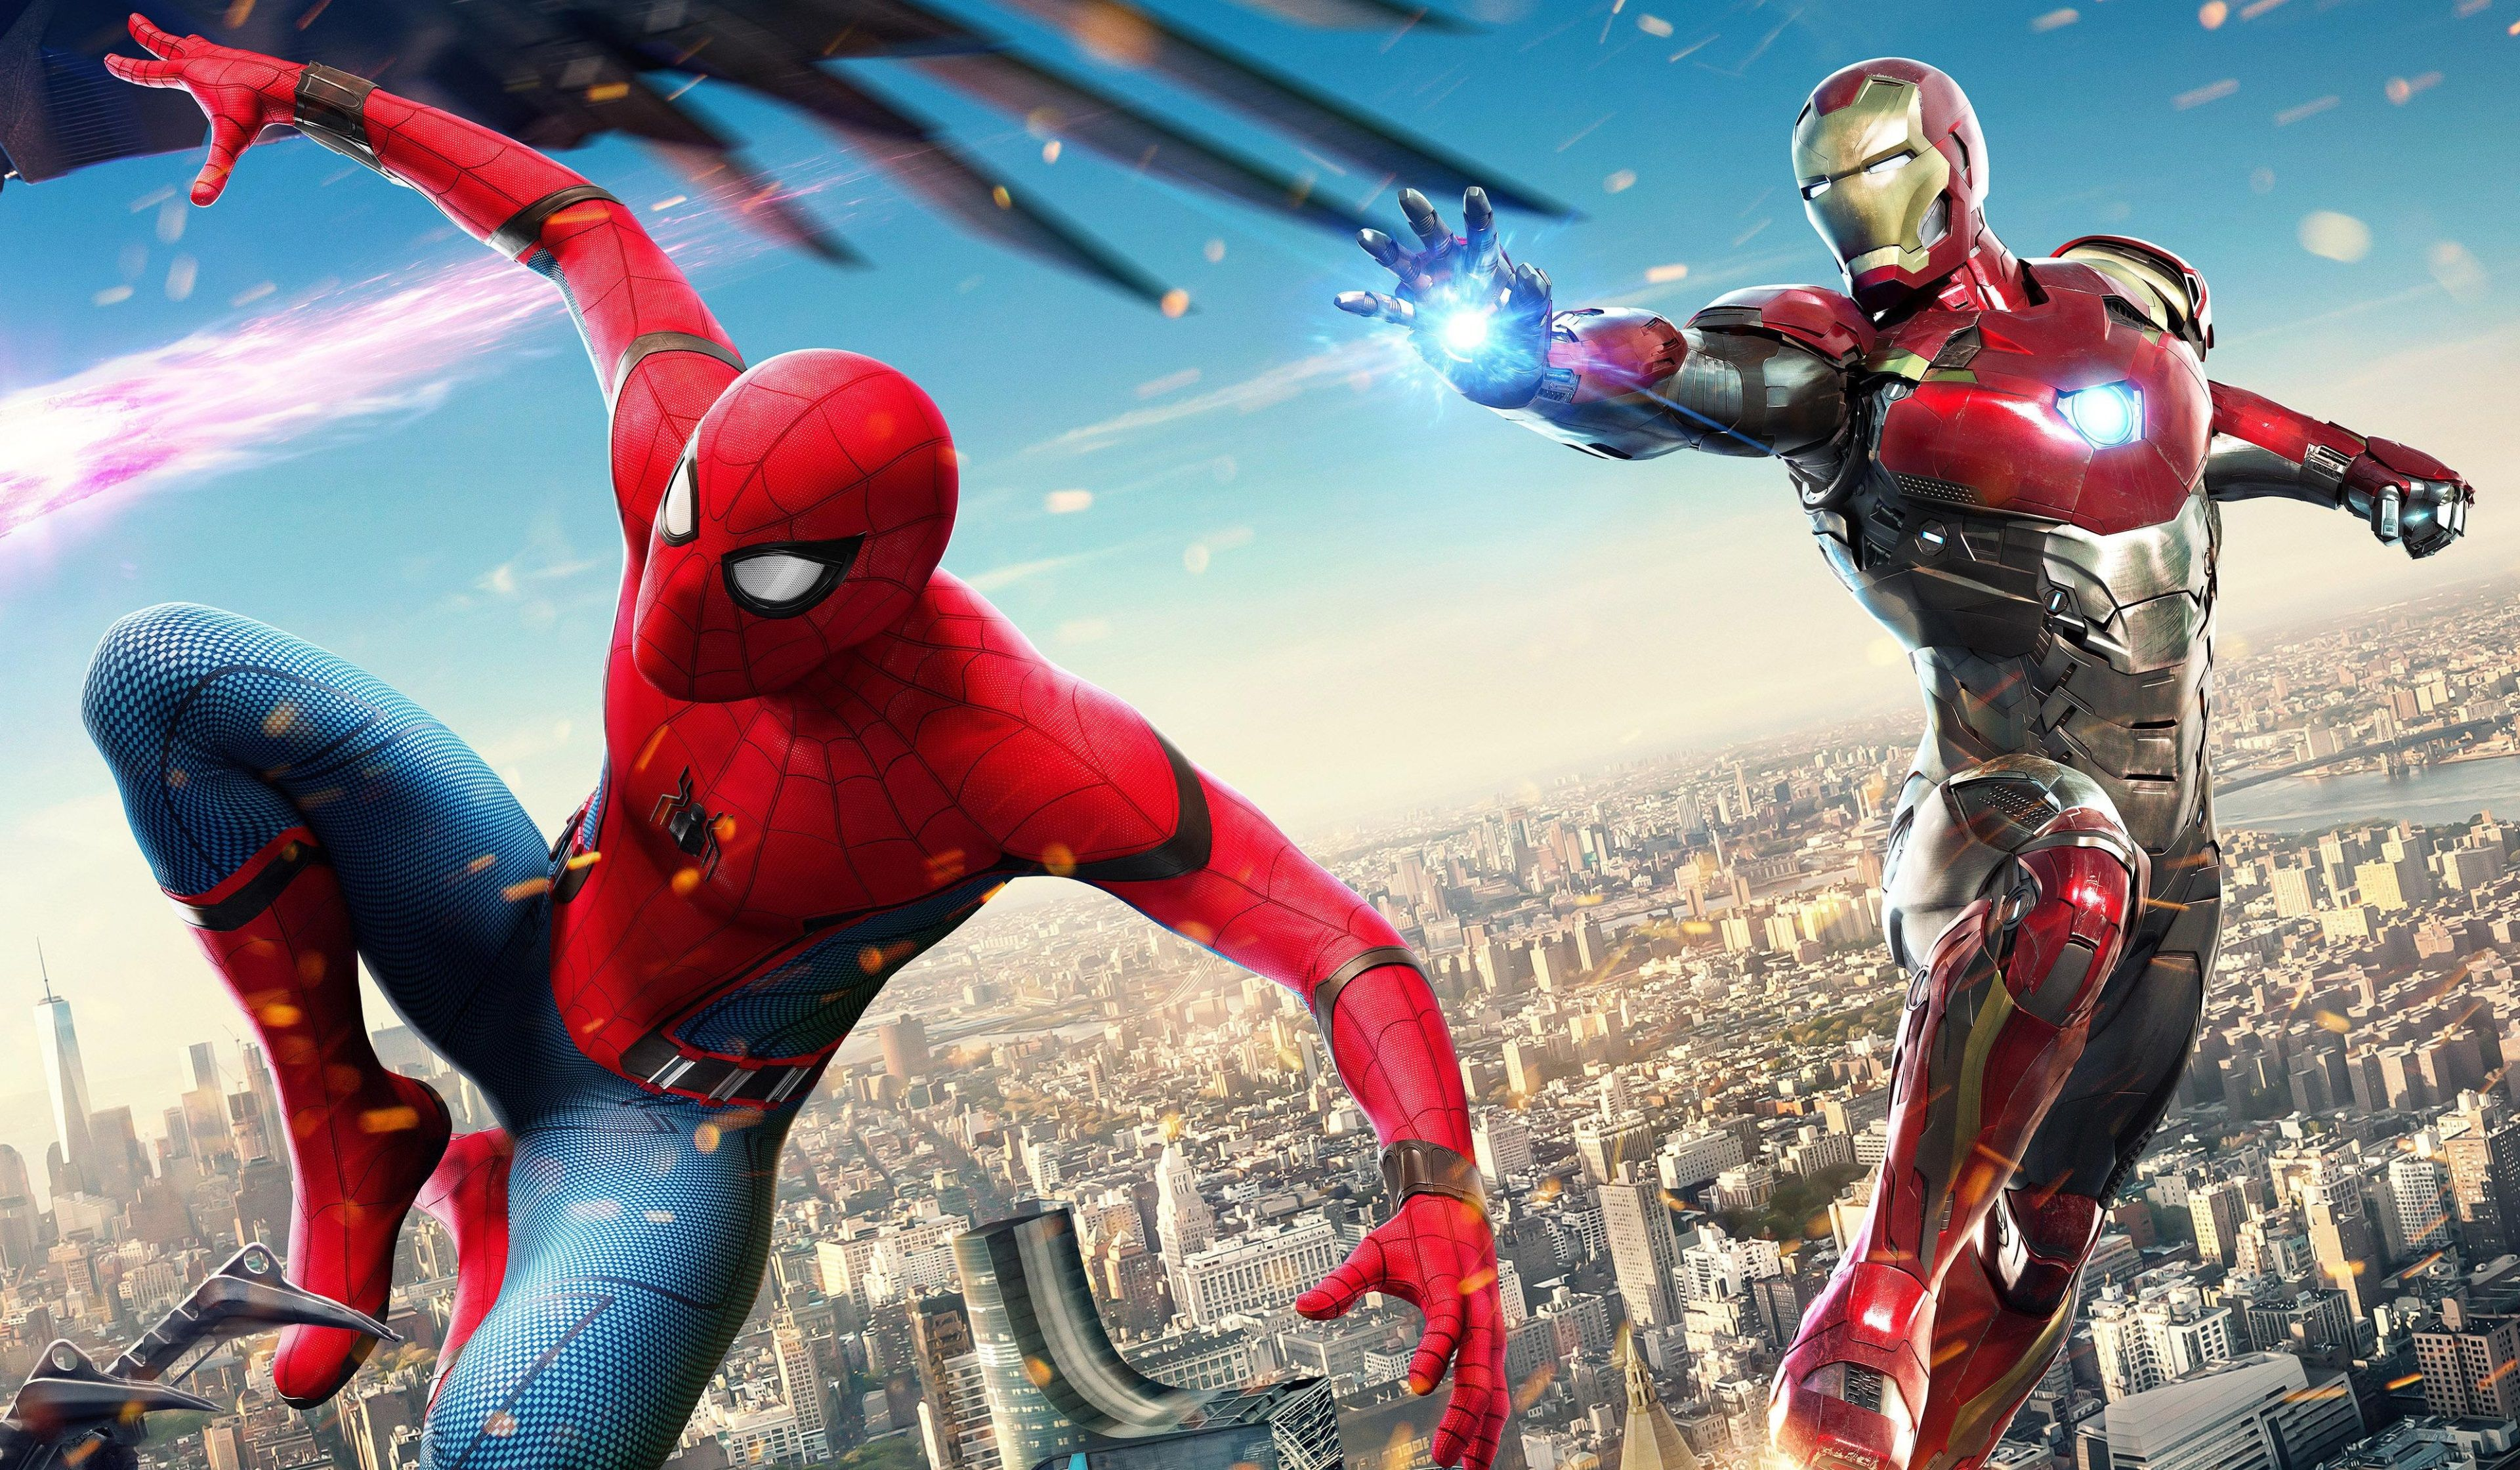 3840x2240 Spiderman Homecoming 4k Hd Image Download Iron Man Spiderman Spiderman Homecoming Spiderman